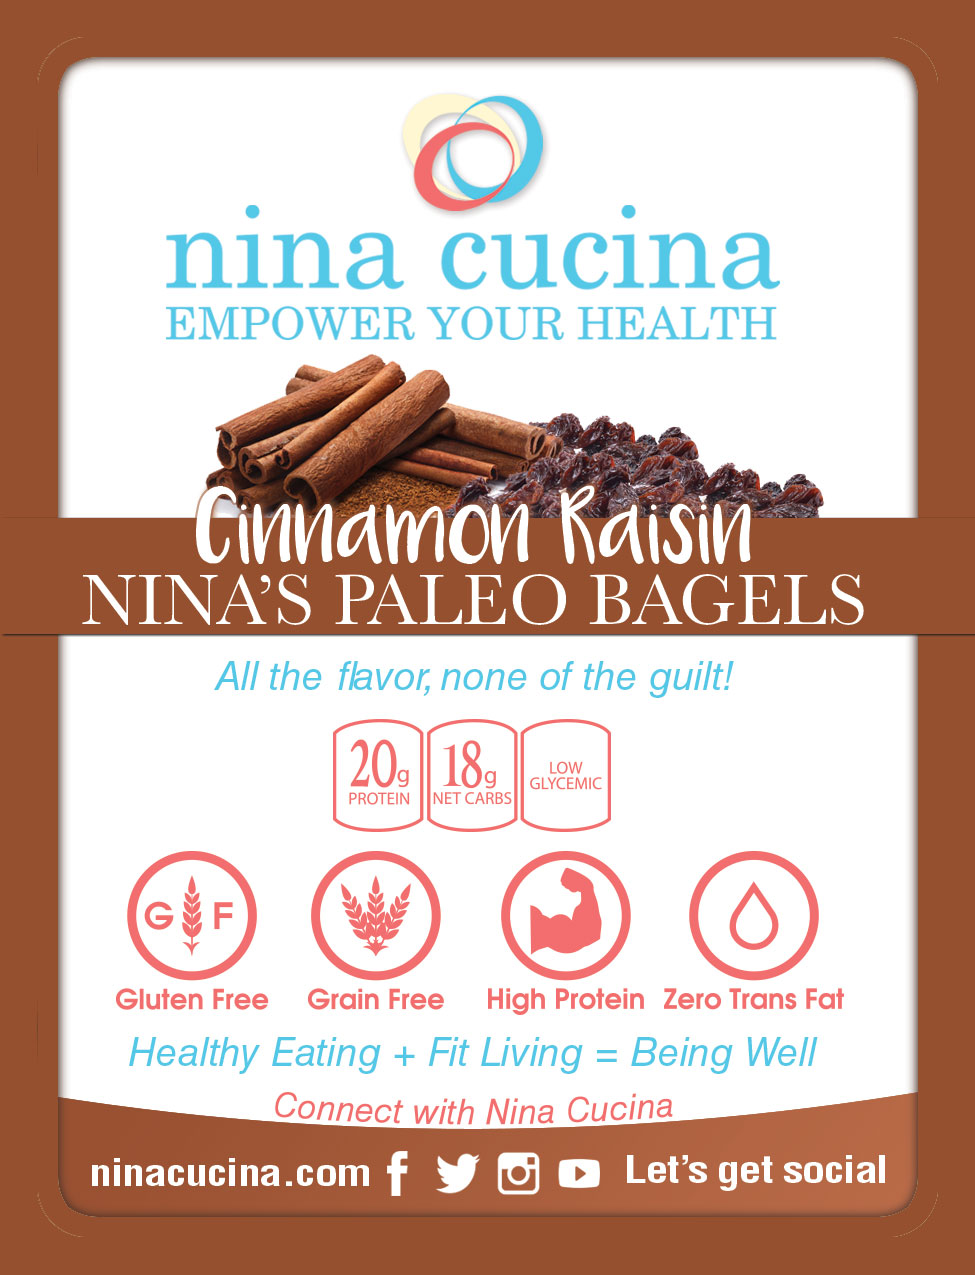 Nina's Paleo Bagels Cinnamon Raisin